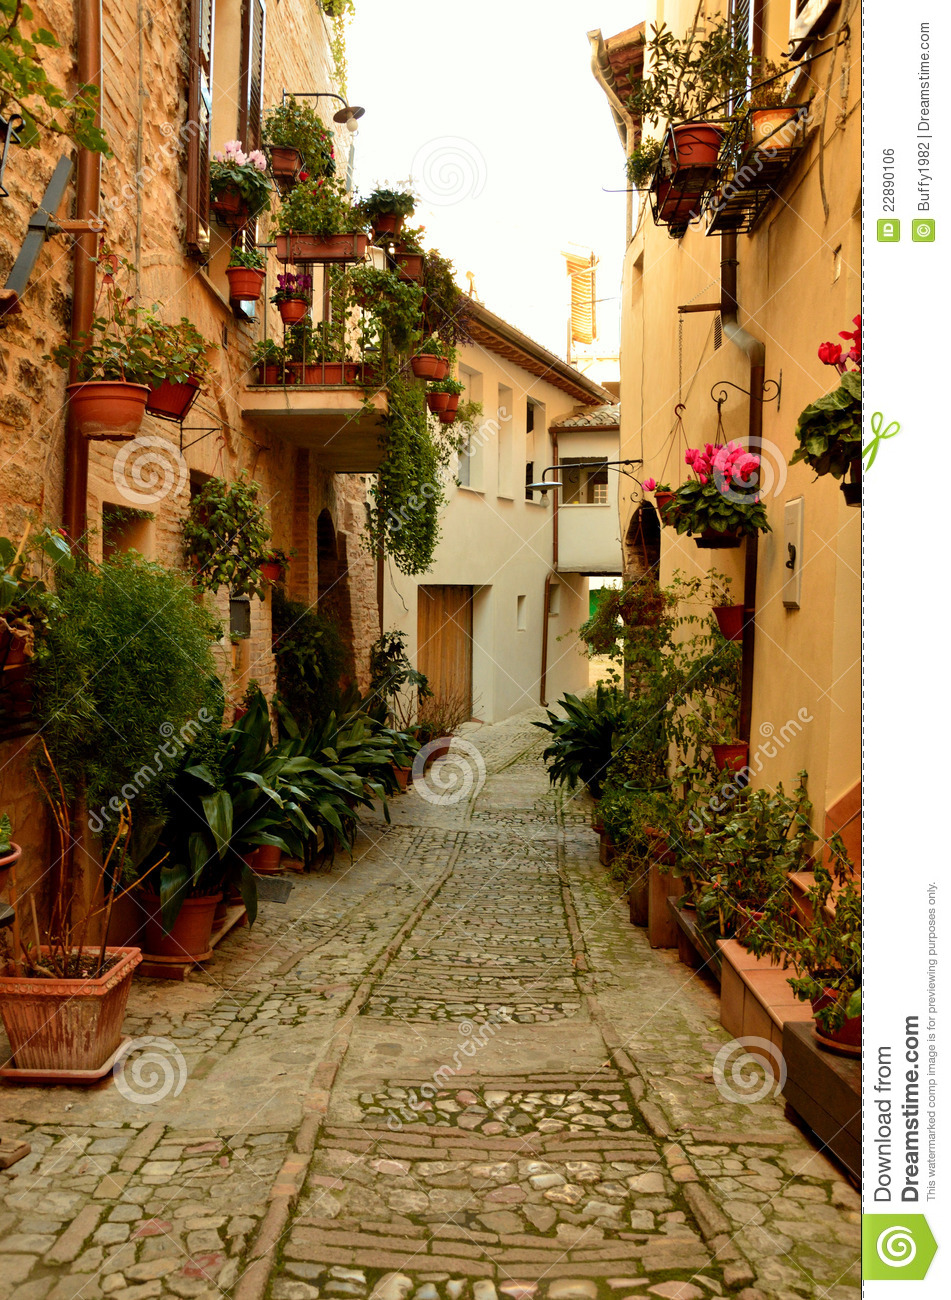 Old Italian Alleyway stock photo Image of design ancient